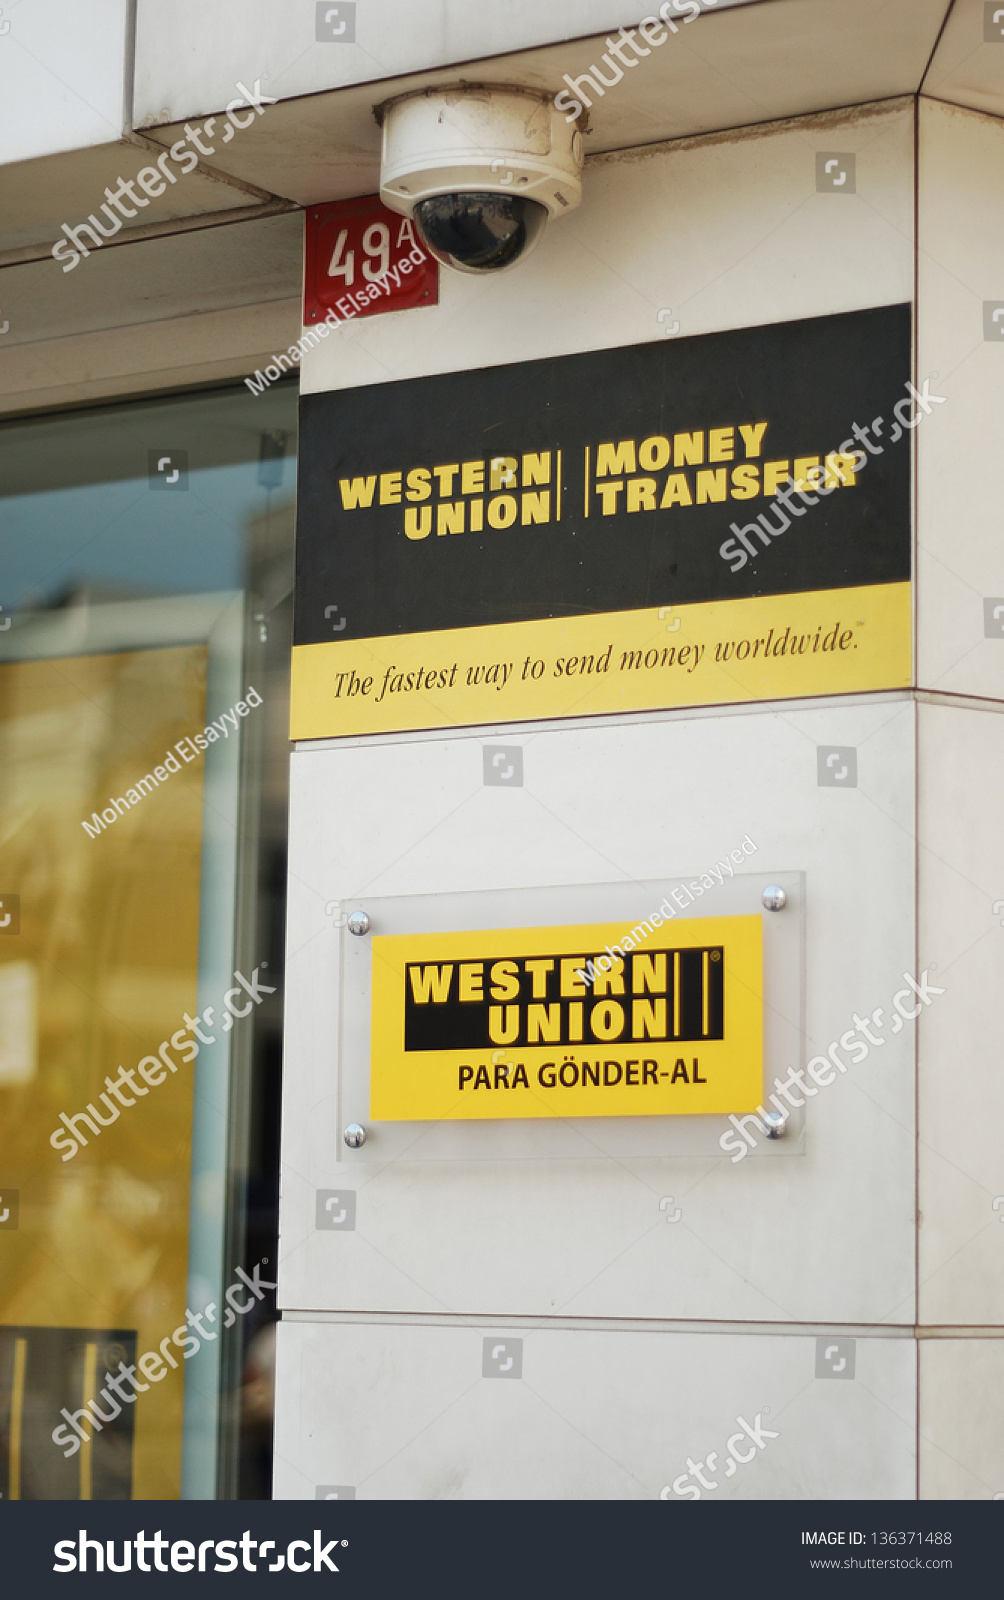 how to become western union agent in india